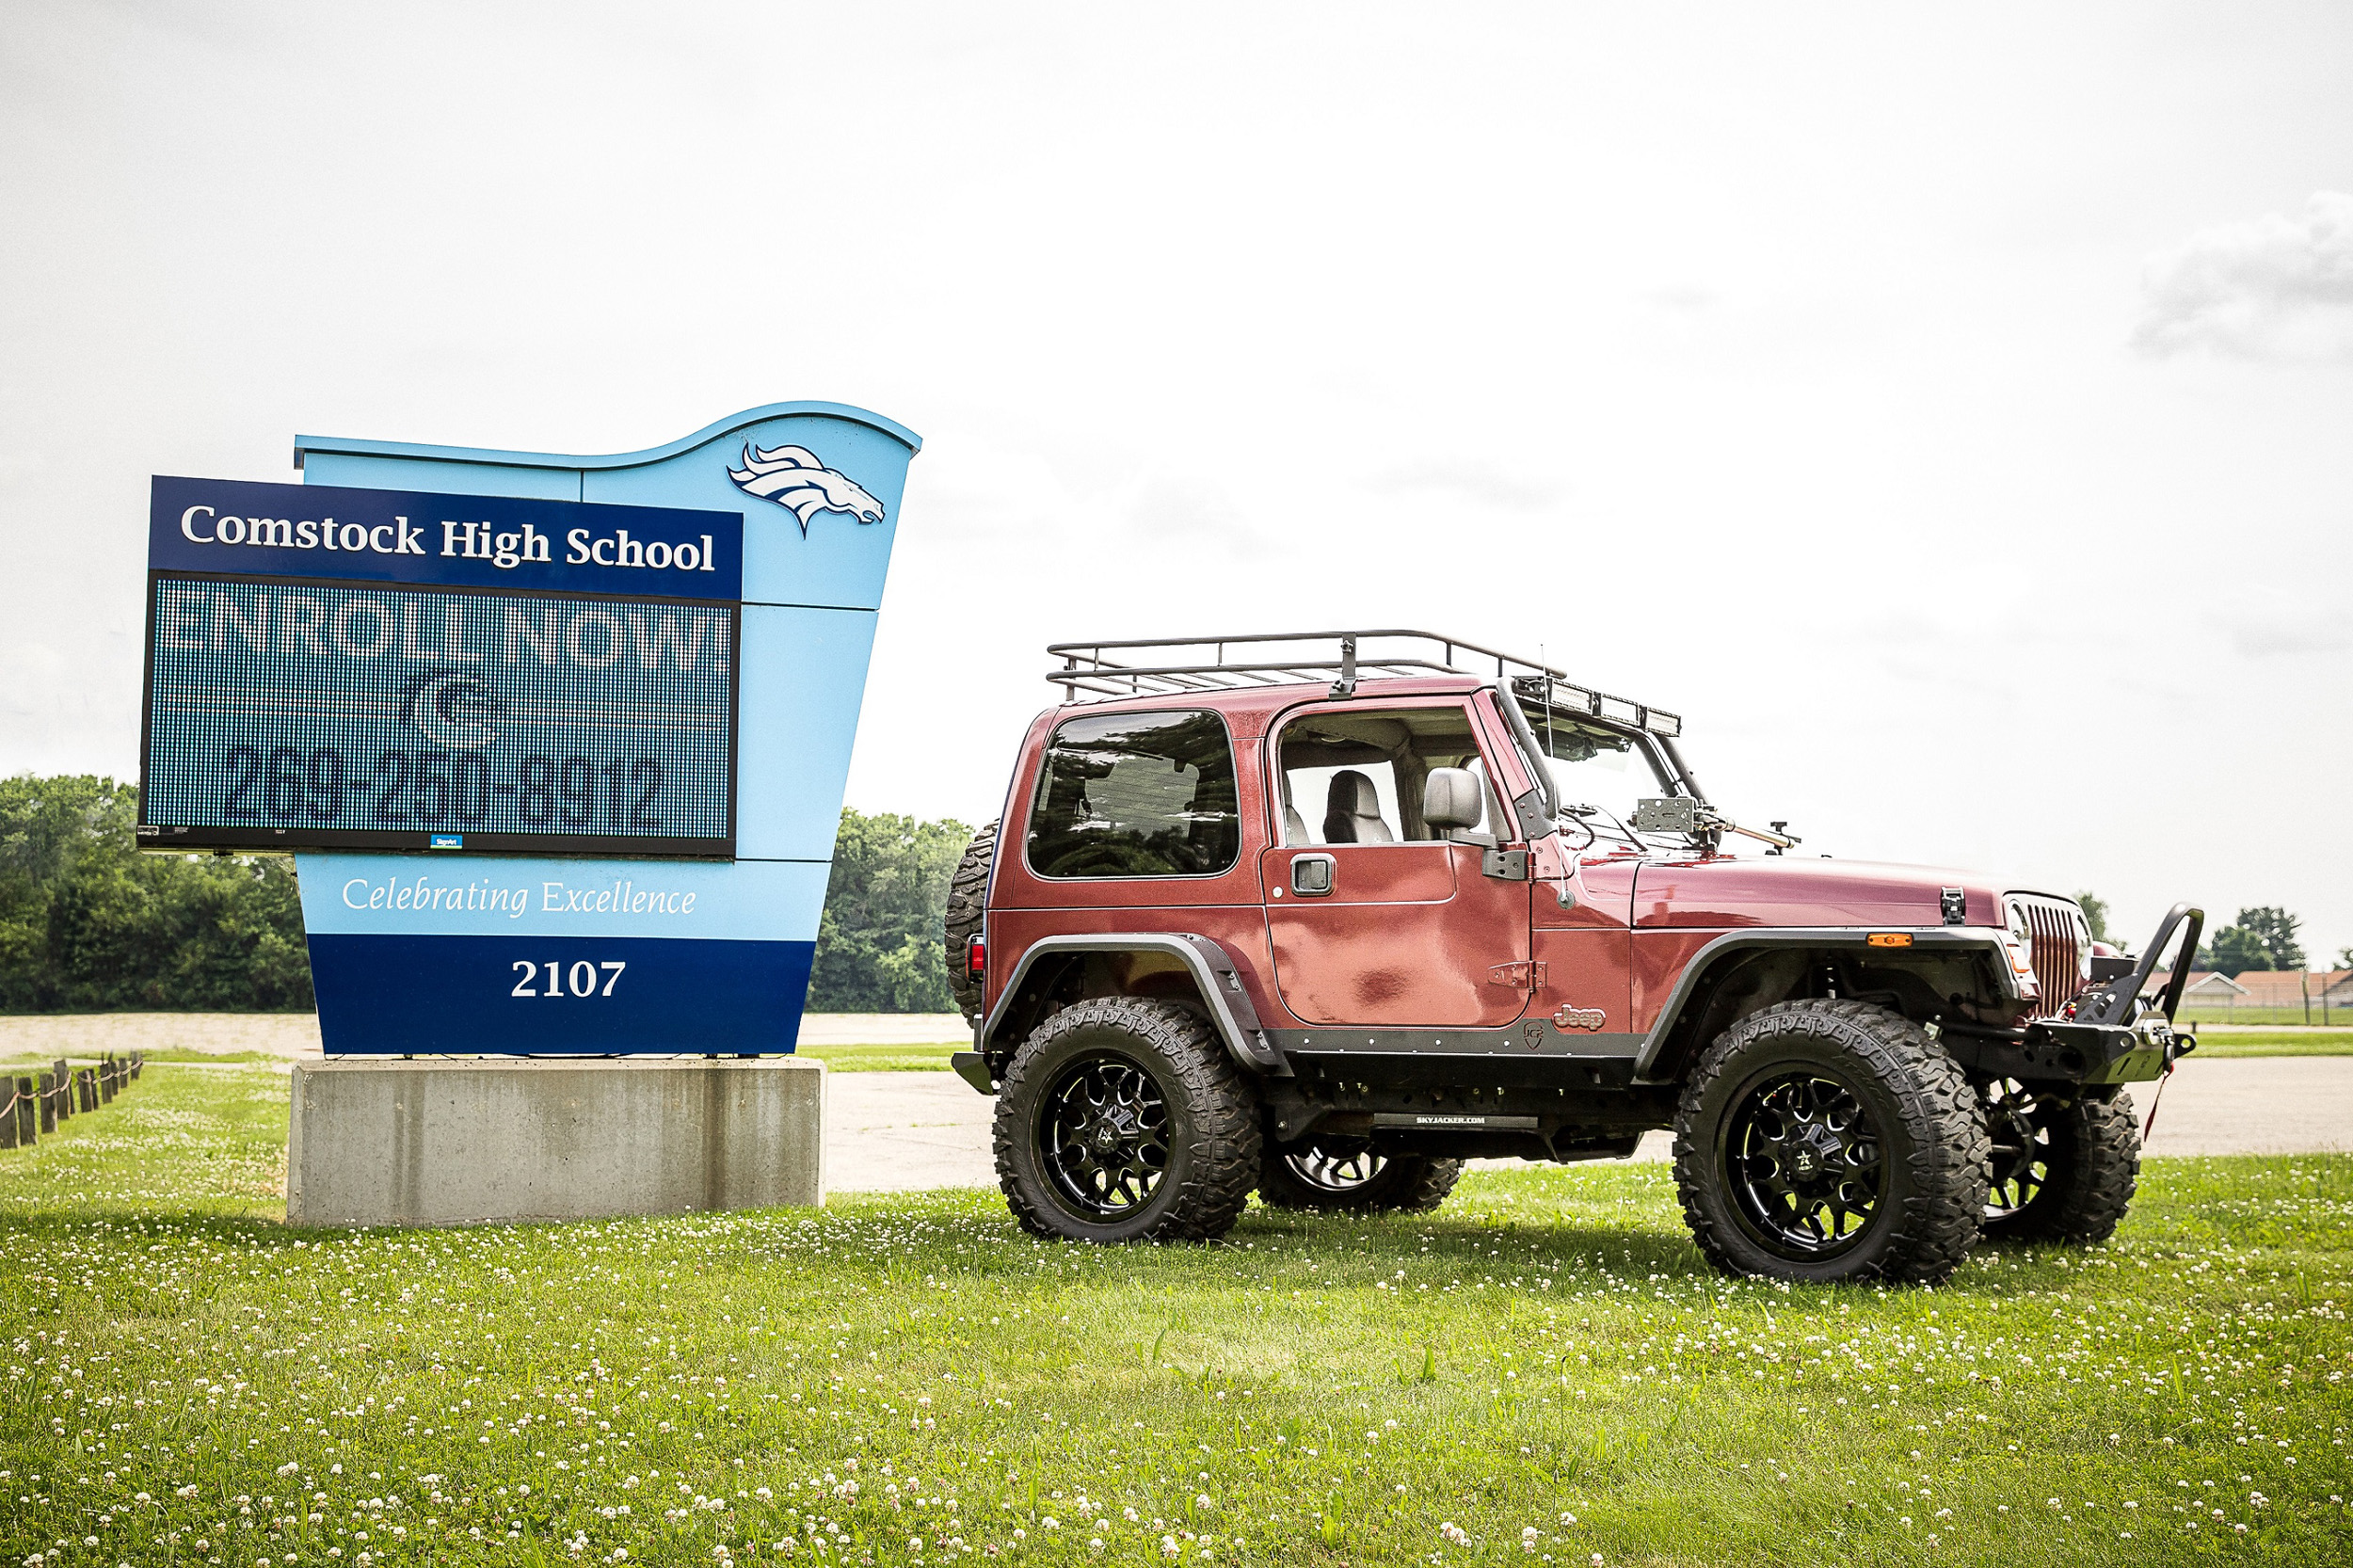 2004 Jeep Wrangler customized by the Comstock High School (photo credit- Beam Photography)